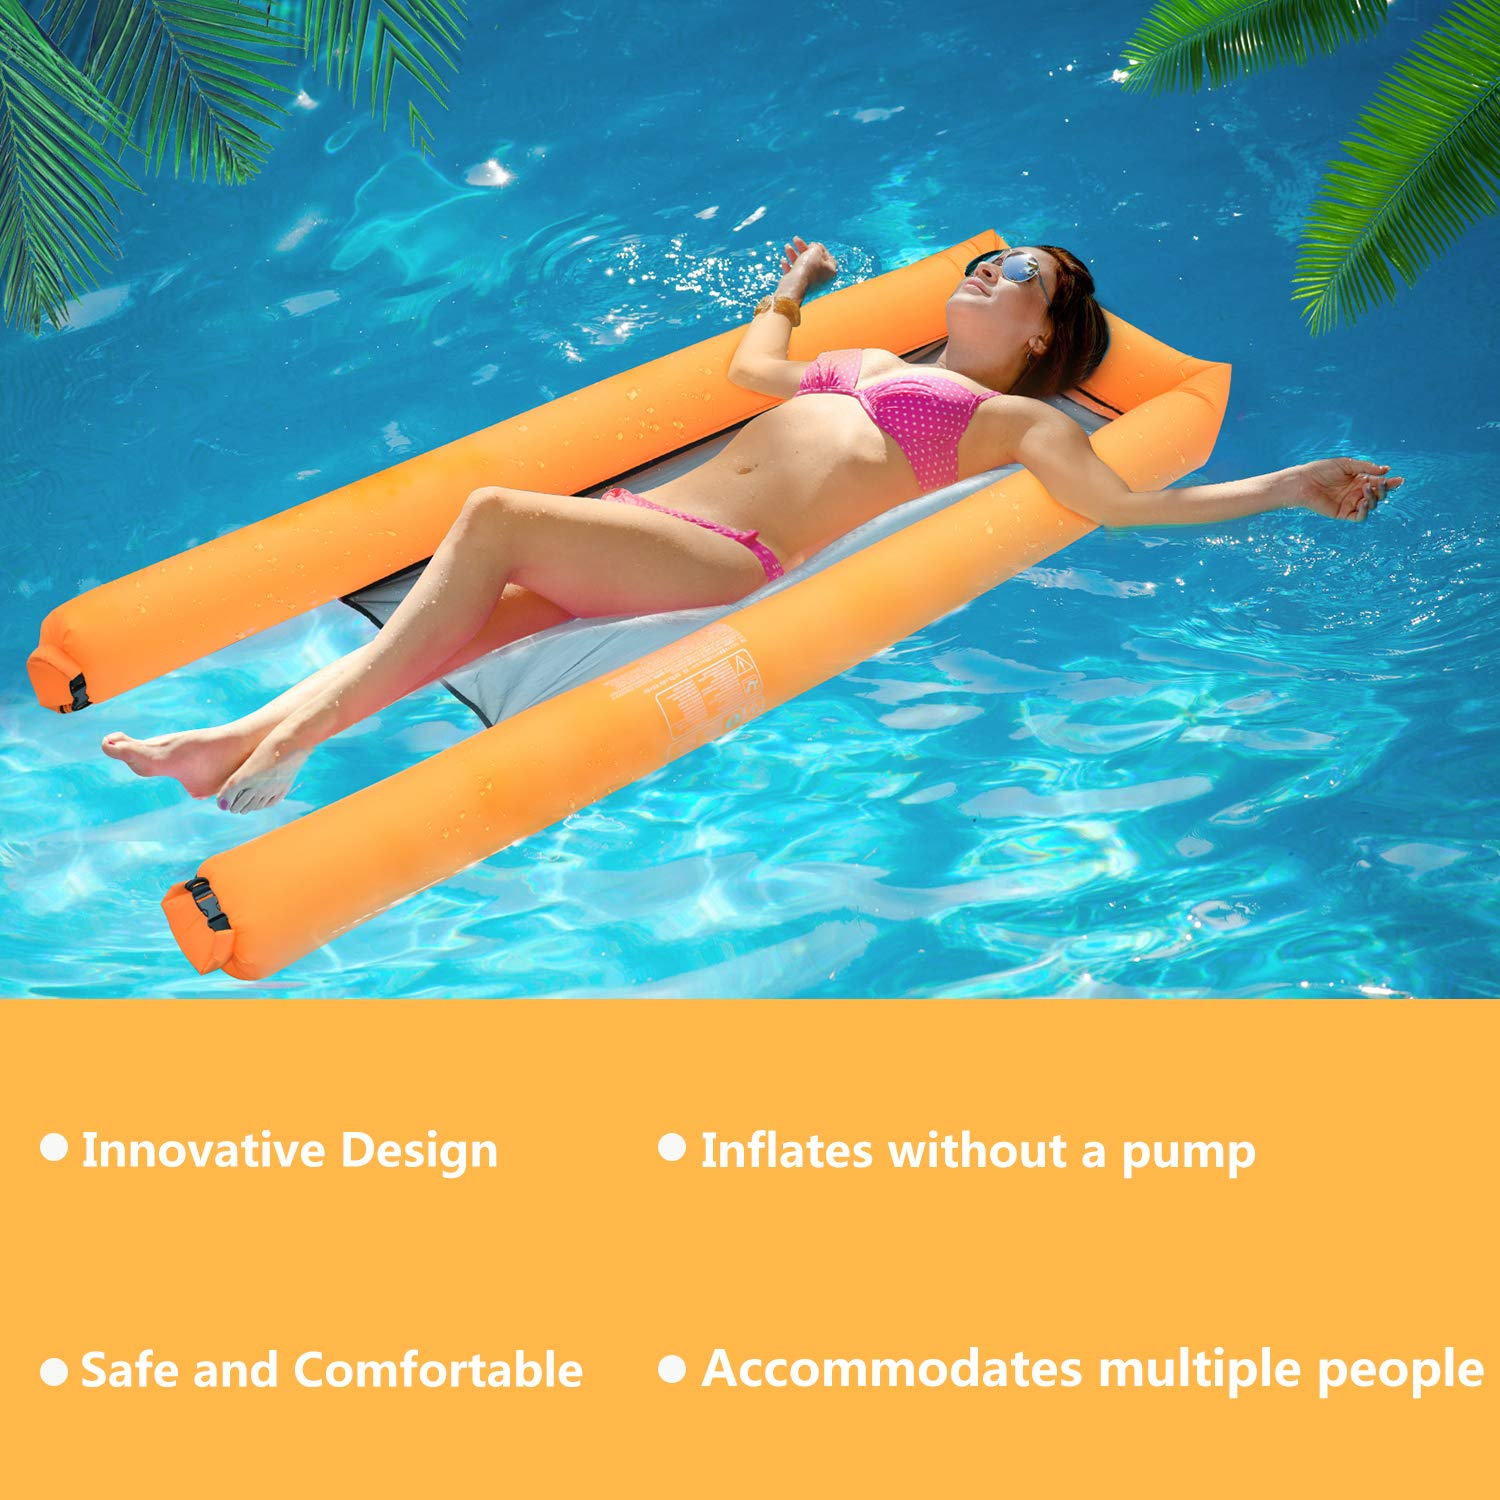 Fansport Inflatable Pool Floats Portable Floating Lounger Chair Water Hammock for Adults & Kids【2019 Upgraded】 440lb Capacity No Leak Ripstop Fabric Fast Inflated No Pump Needed with Compact Carry Bag